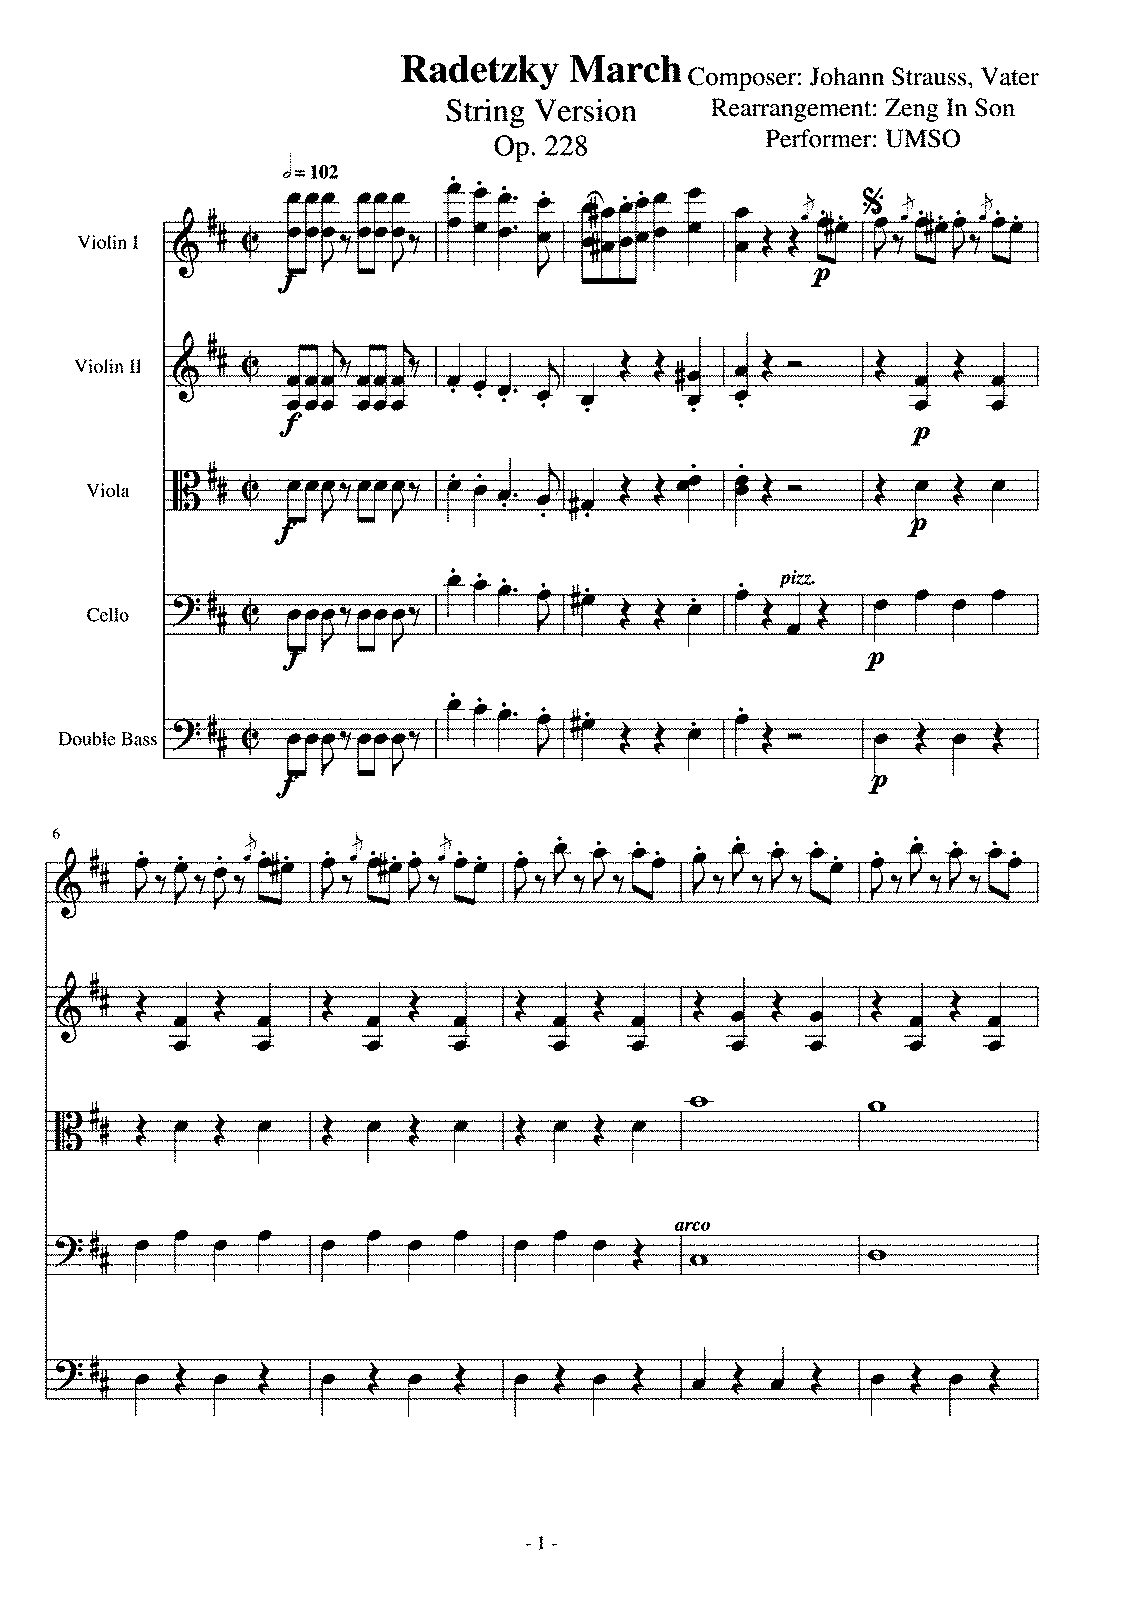 PMLP68787-Radetzky March Score.pdf